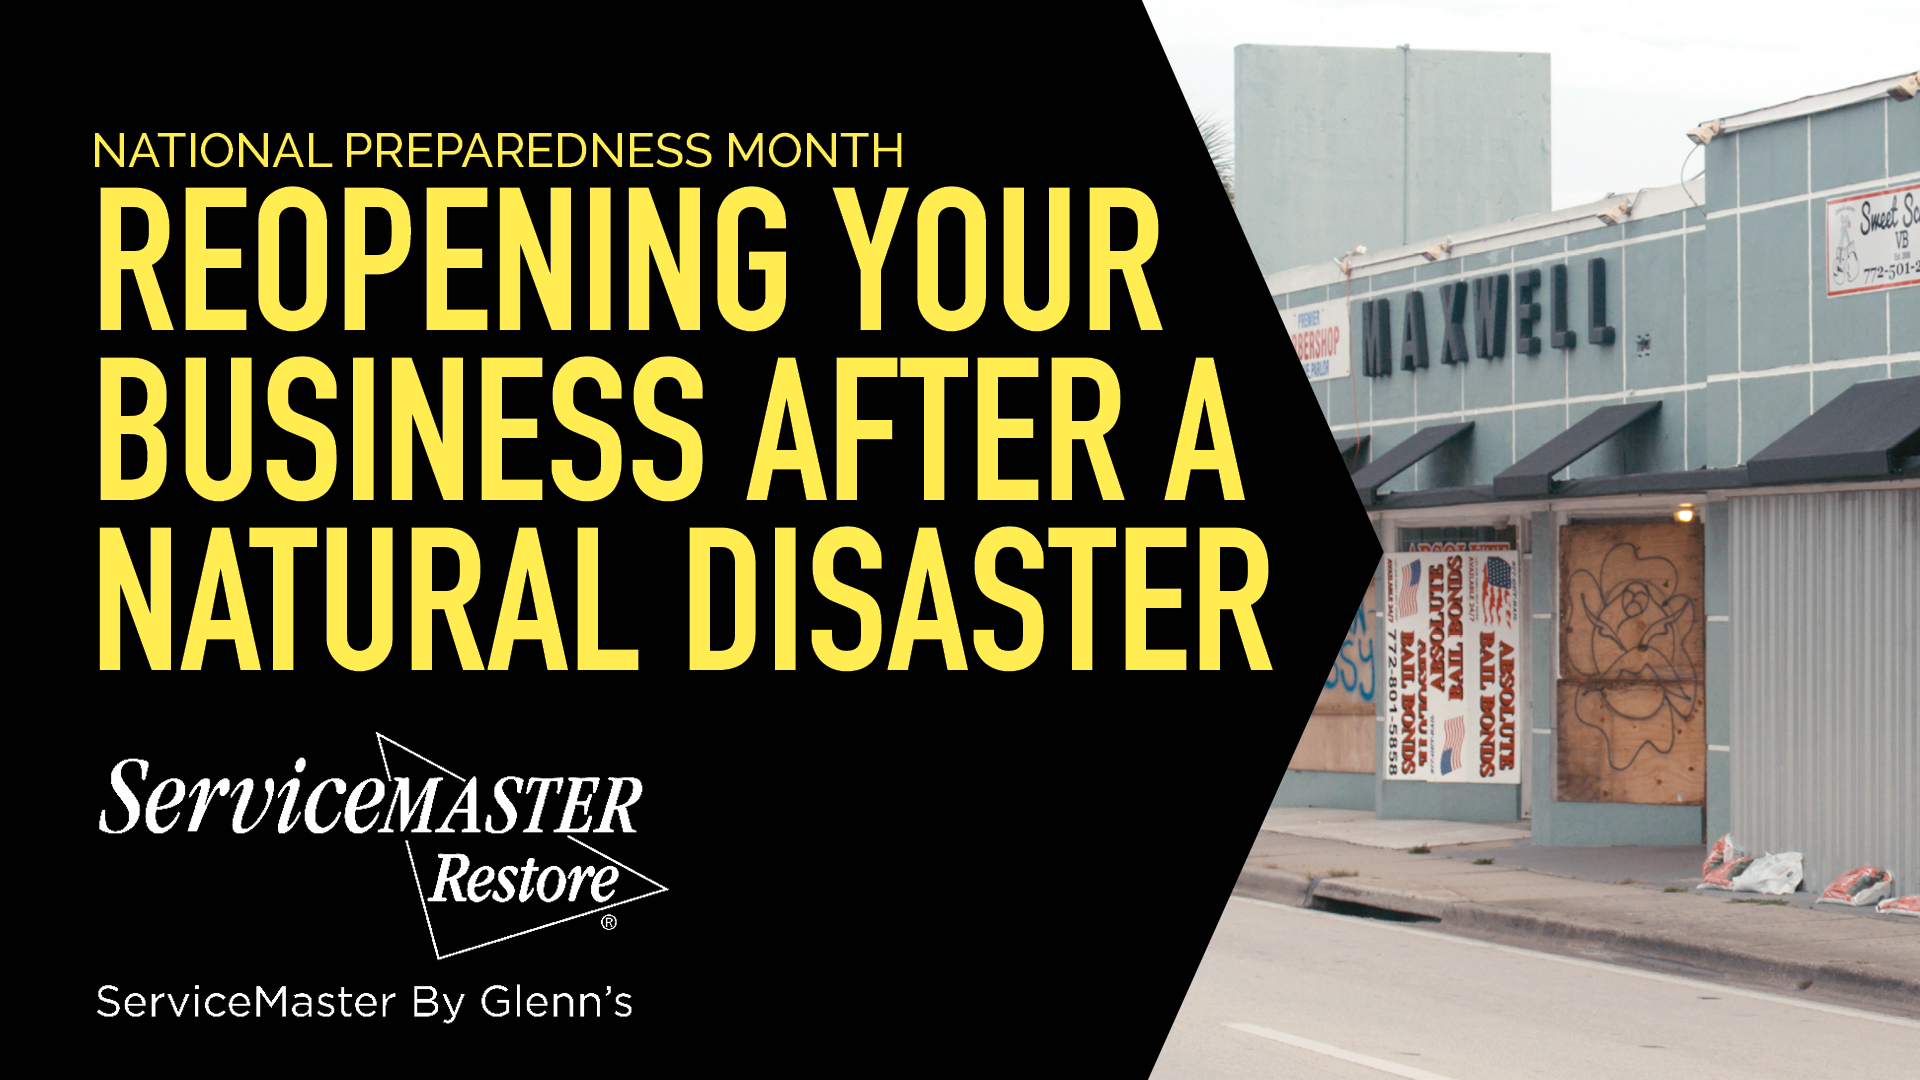 TIPS ON REOPENING YOUR BUSINESS AFTER A NATURAL DISASTER